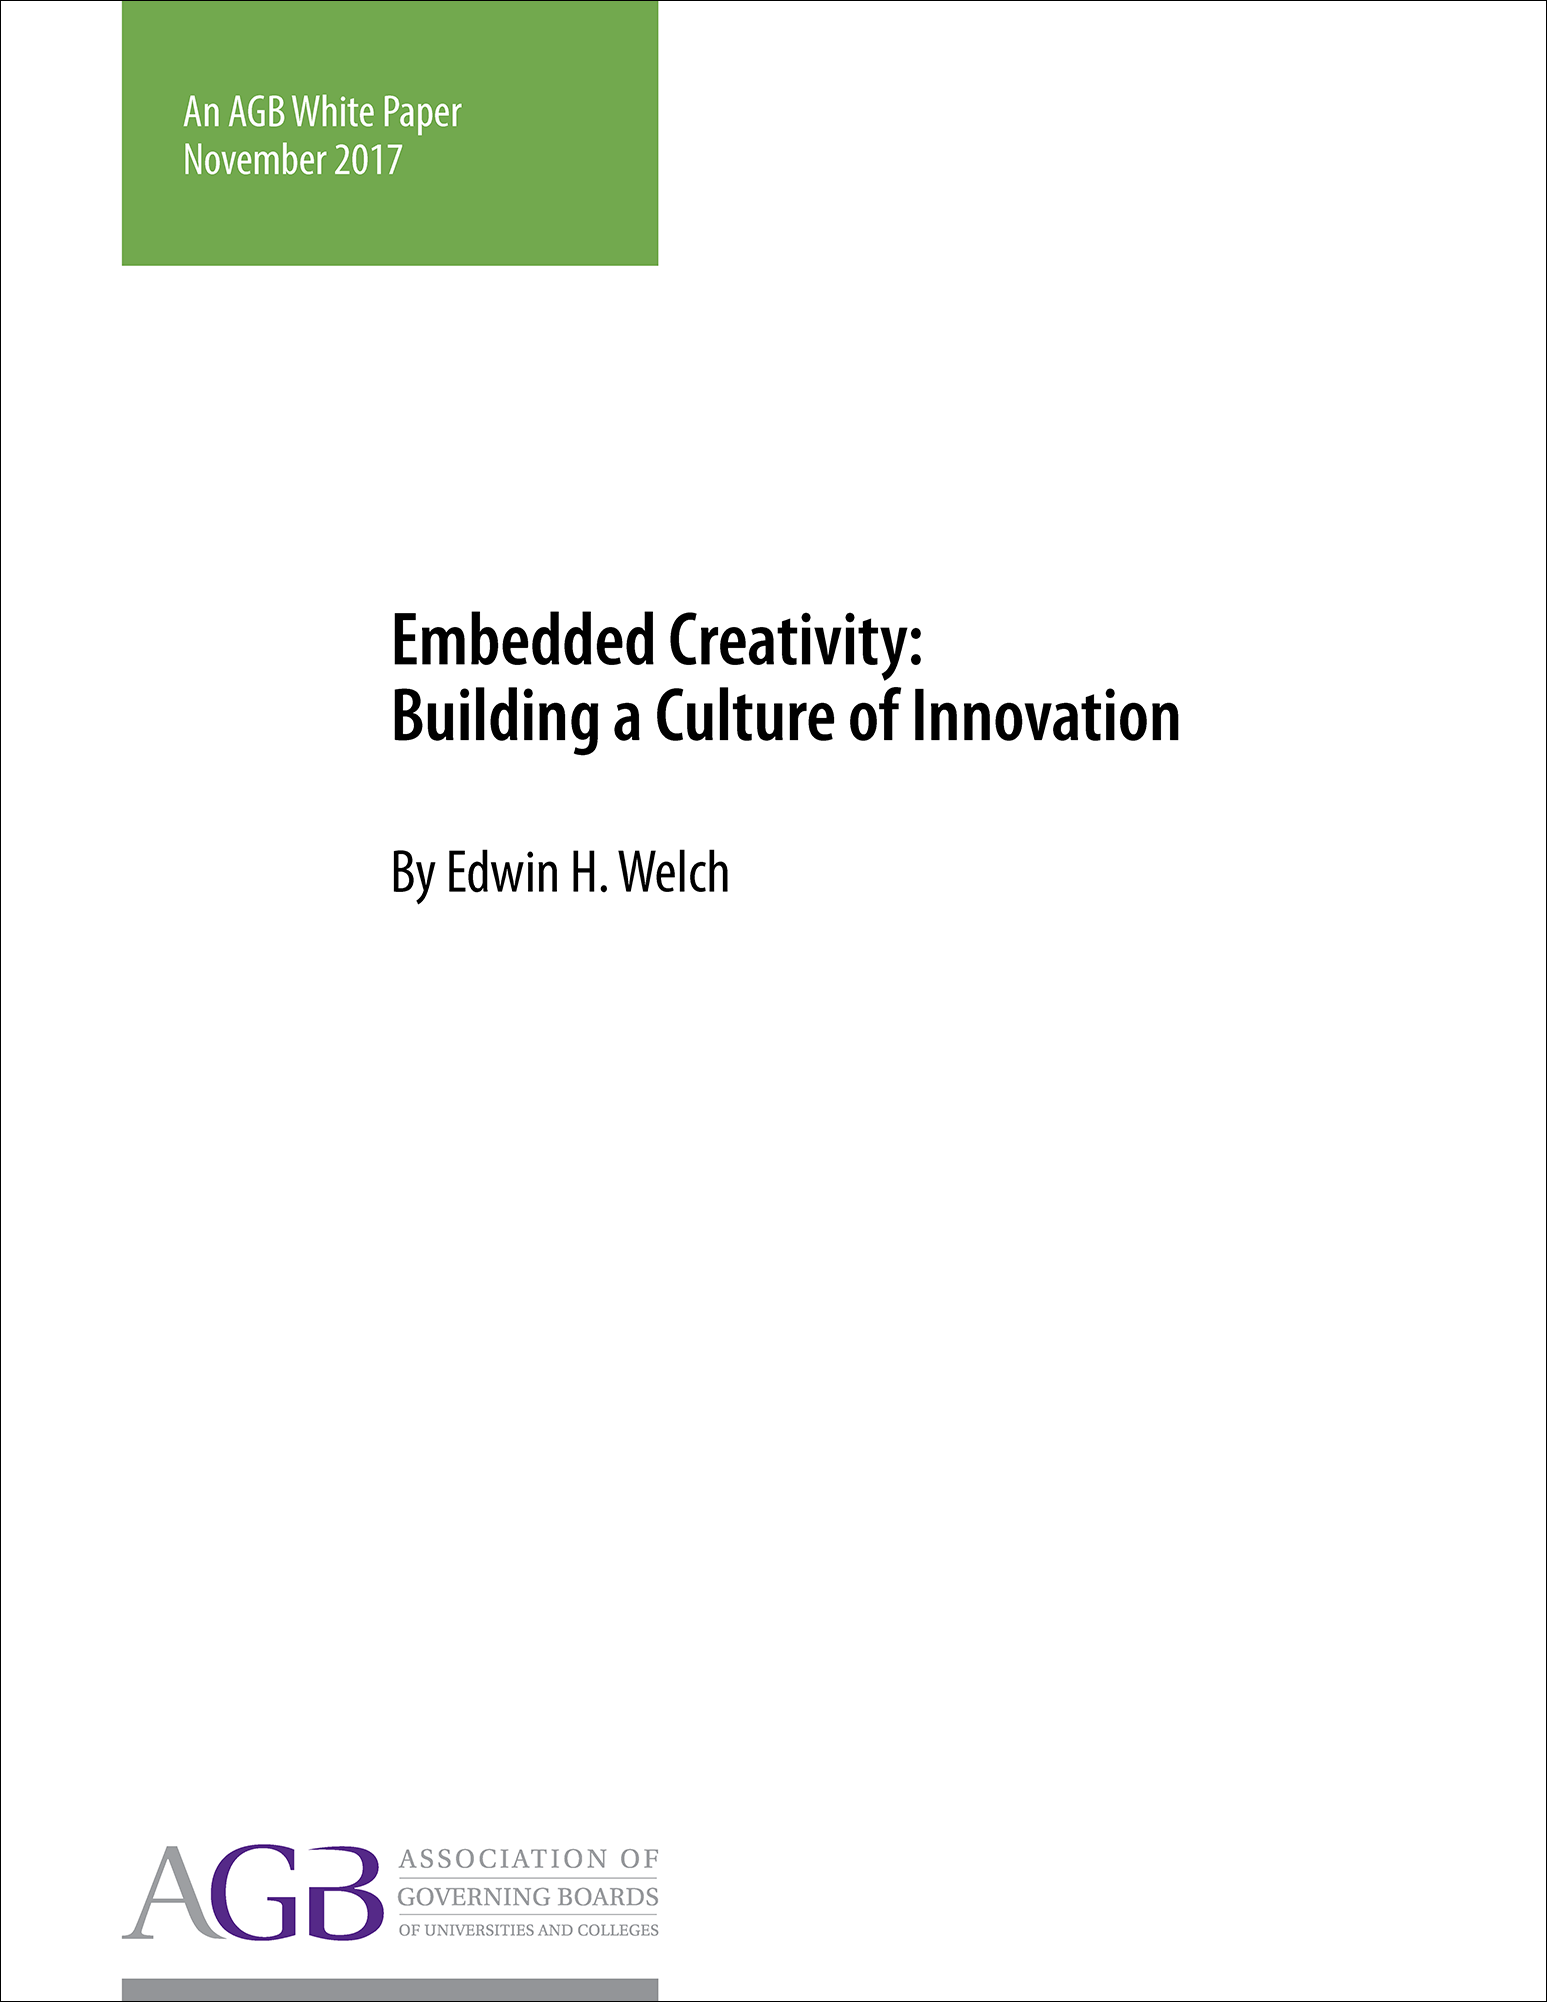 Embedded Creativity: Building a Culture of Innovation